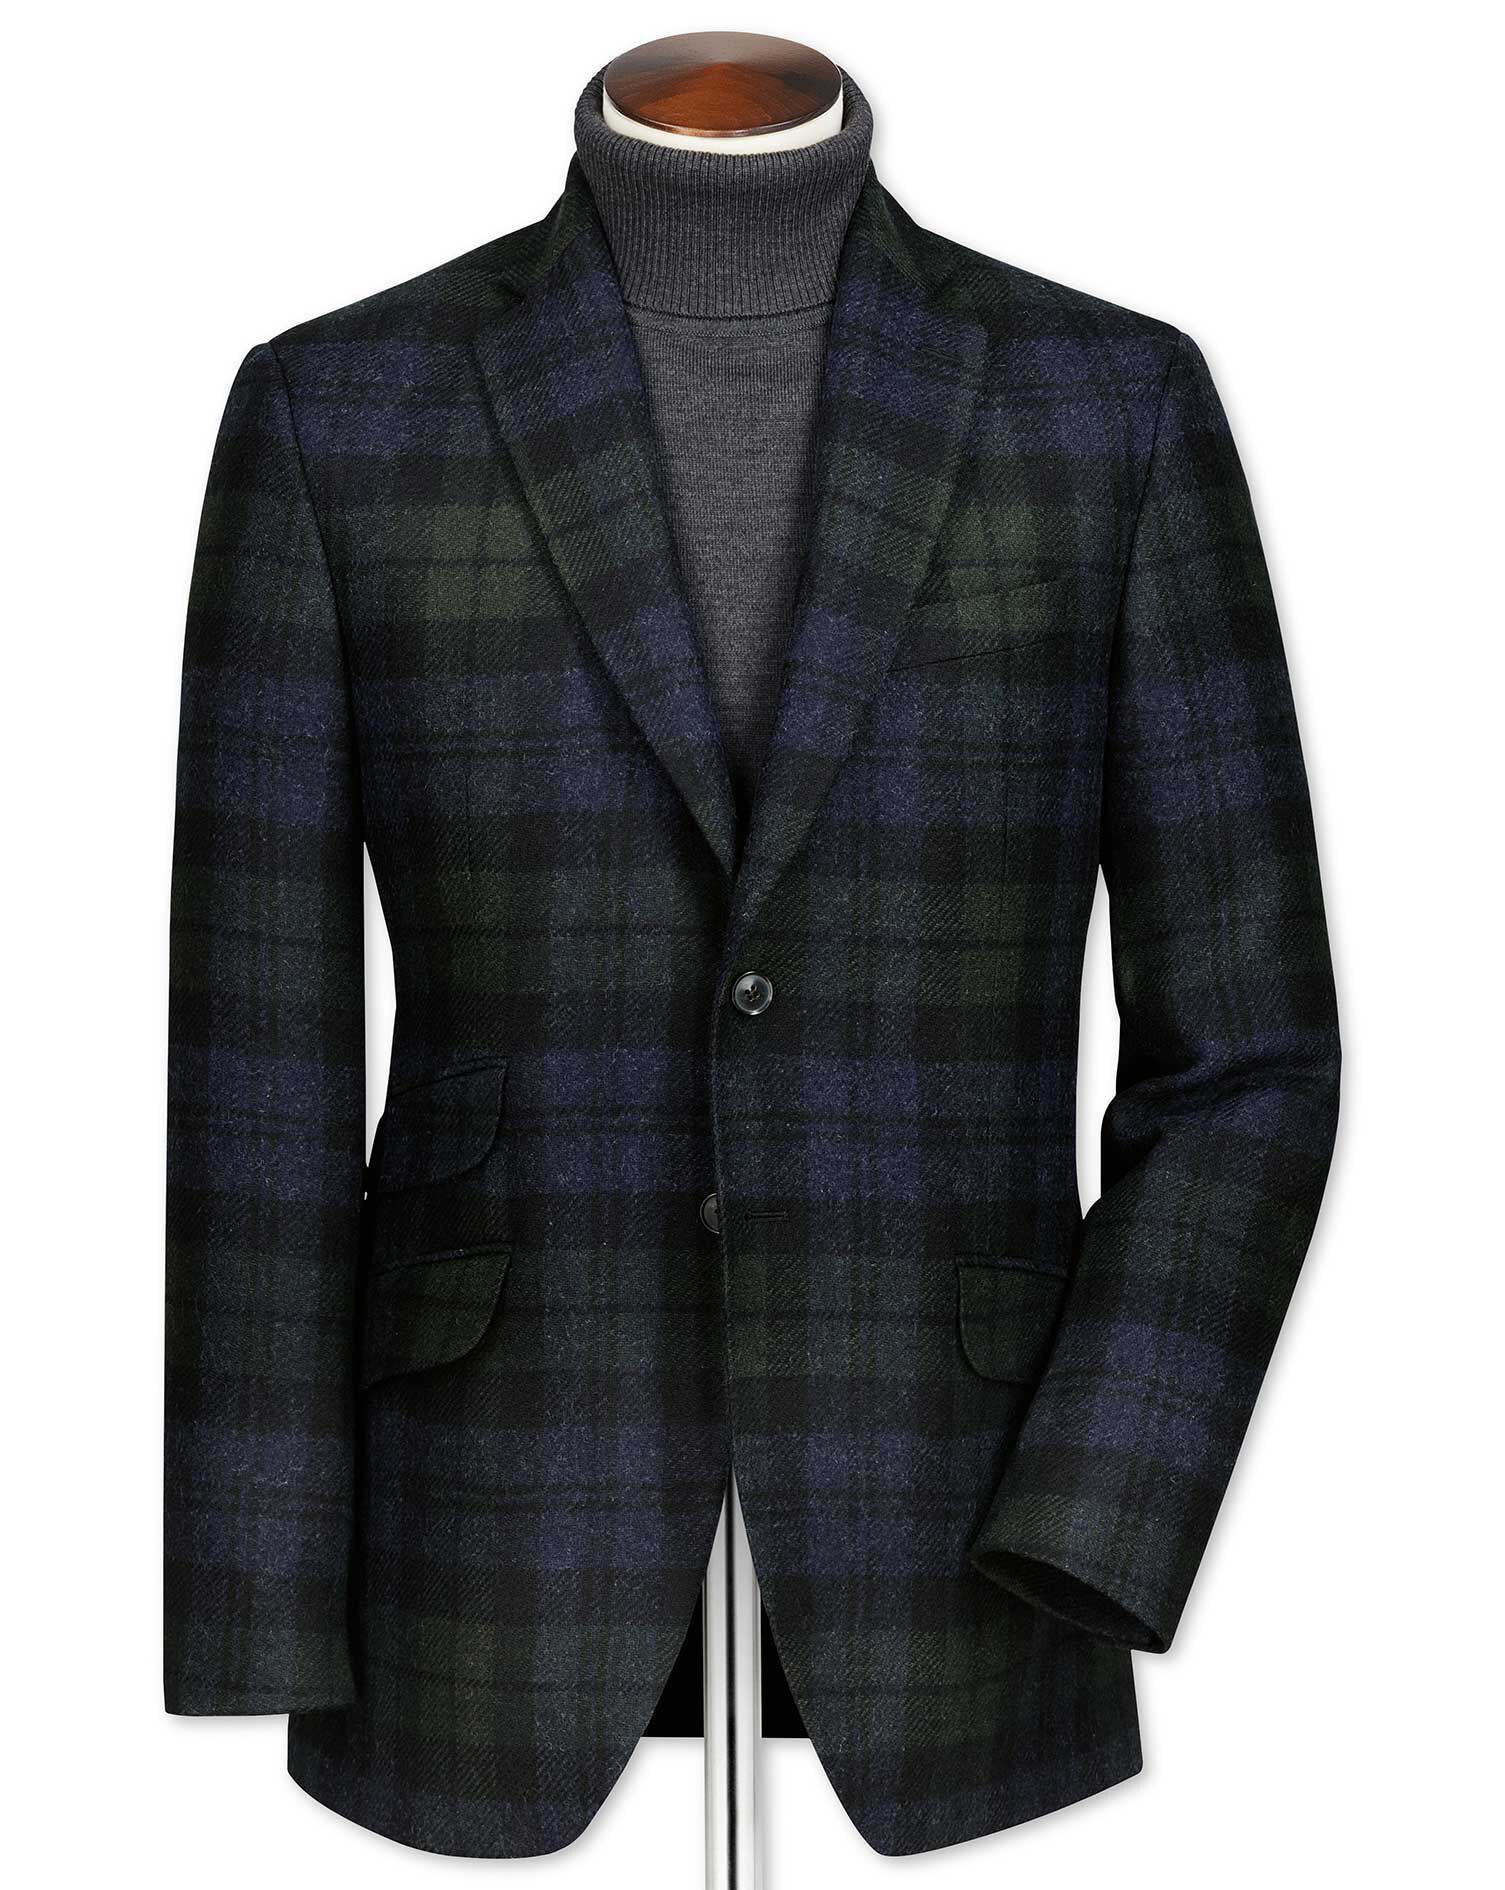 Slim Fit Green and Navy Checkered Wool Wool Jacket Size 42 Long by Charles Tyrwhitt